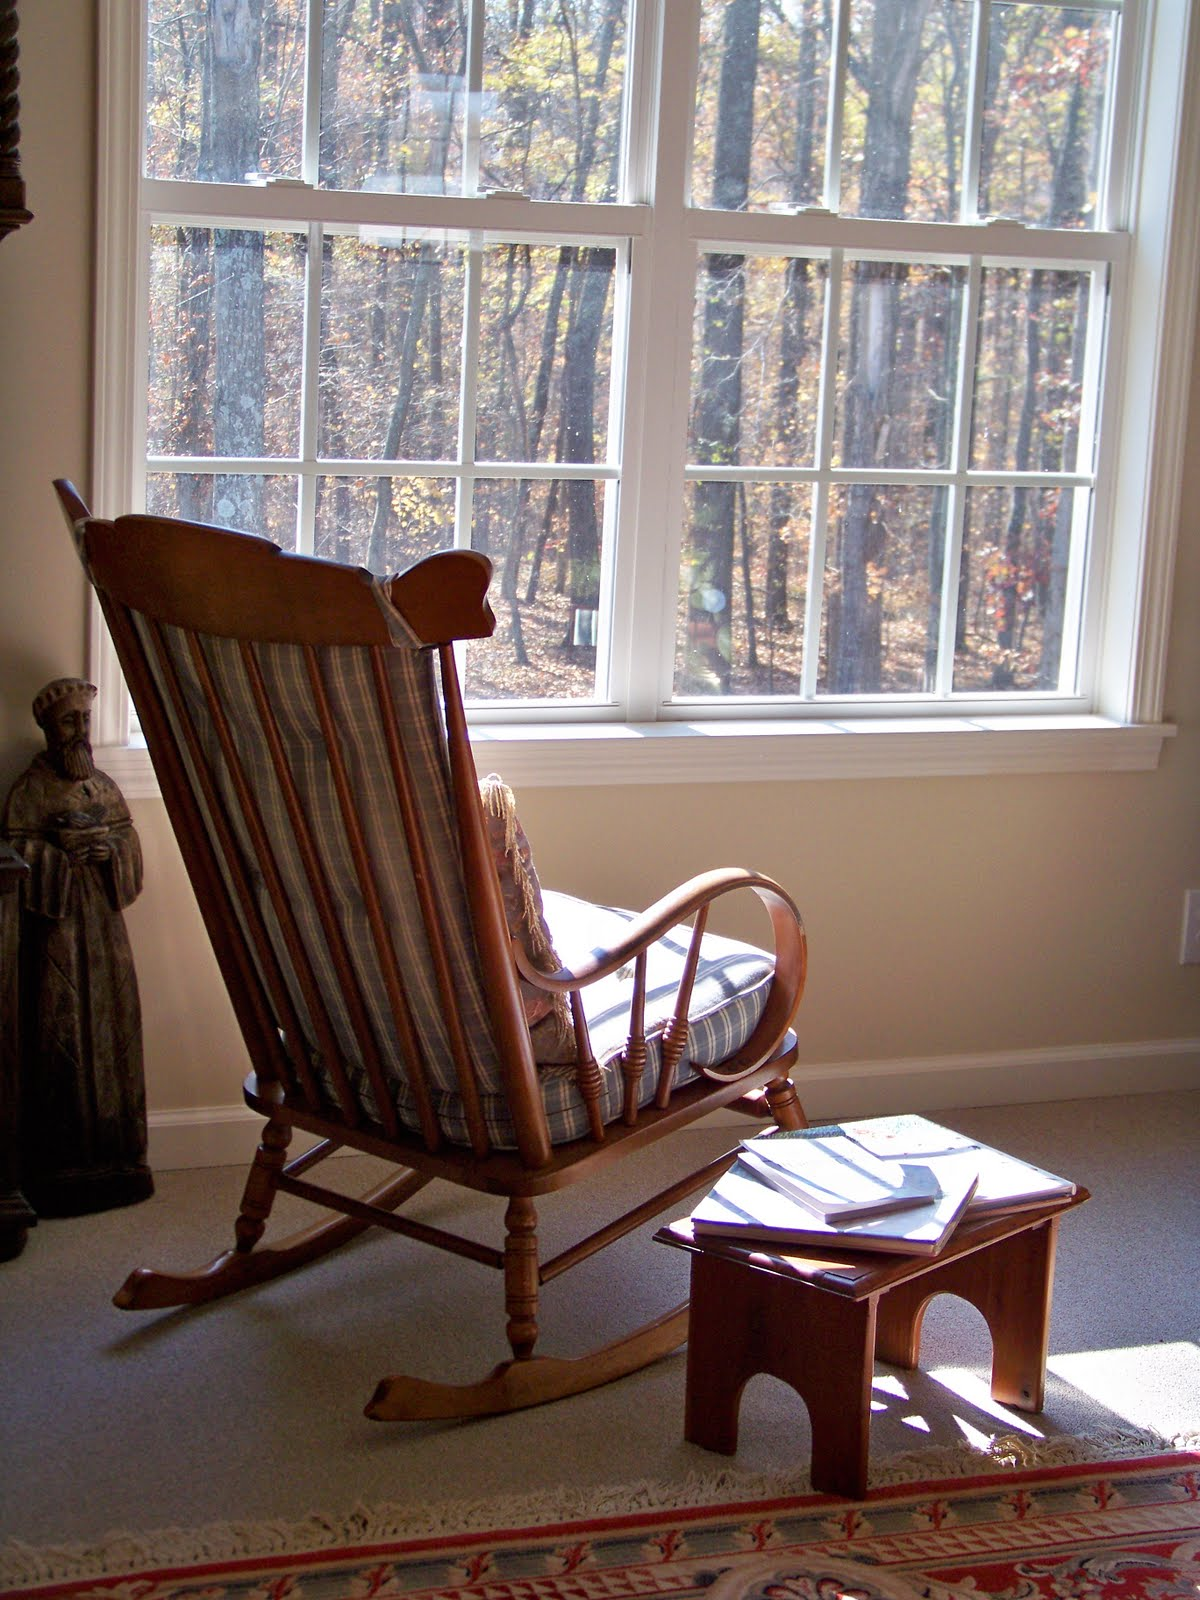 My Journey To Mindfulness The Old Rocking Chair